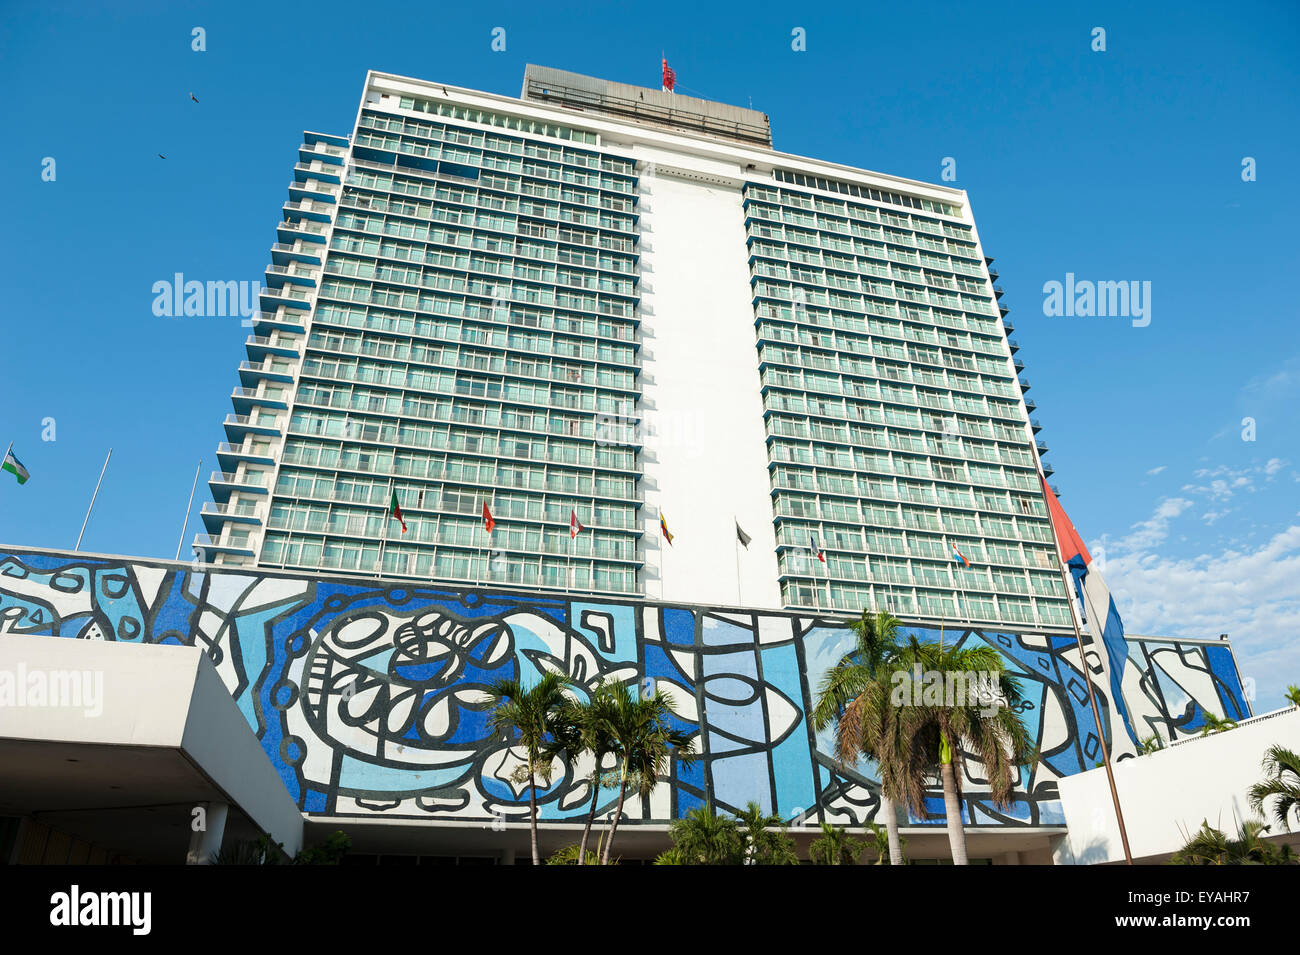 HAVANA, CUBA - JUNE, 2011: The exterior of the Hotel Tryp Habana Libre in Vedado features a large mural by artist - Stock Image